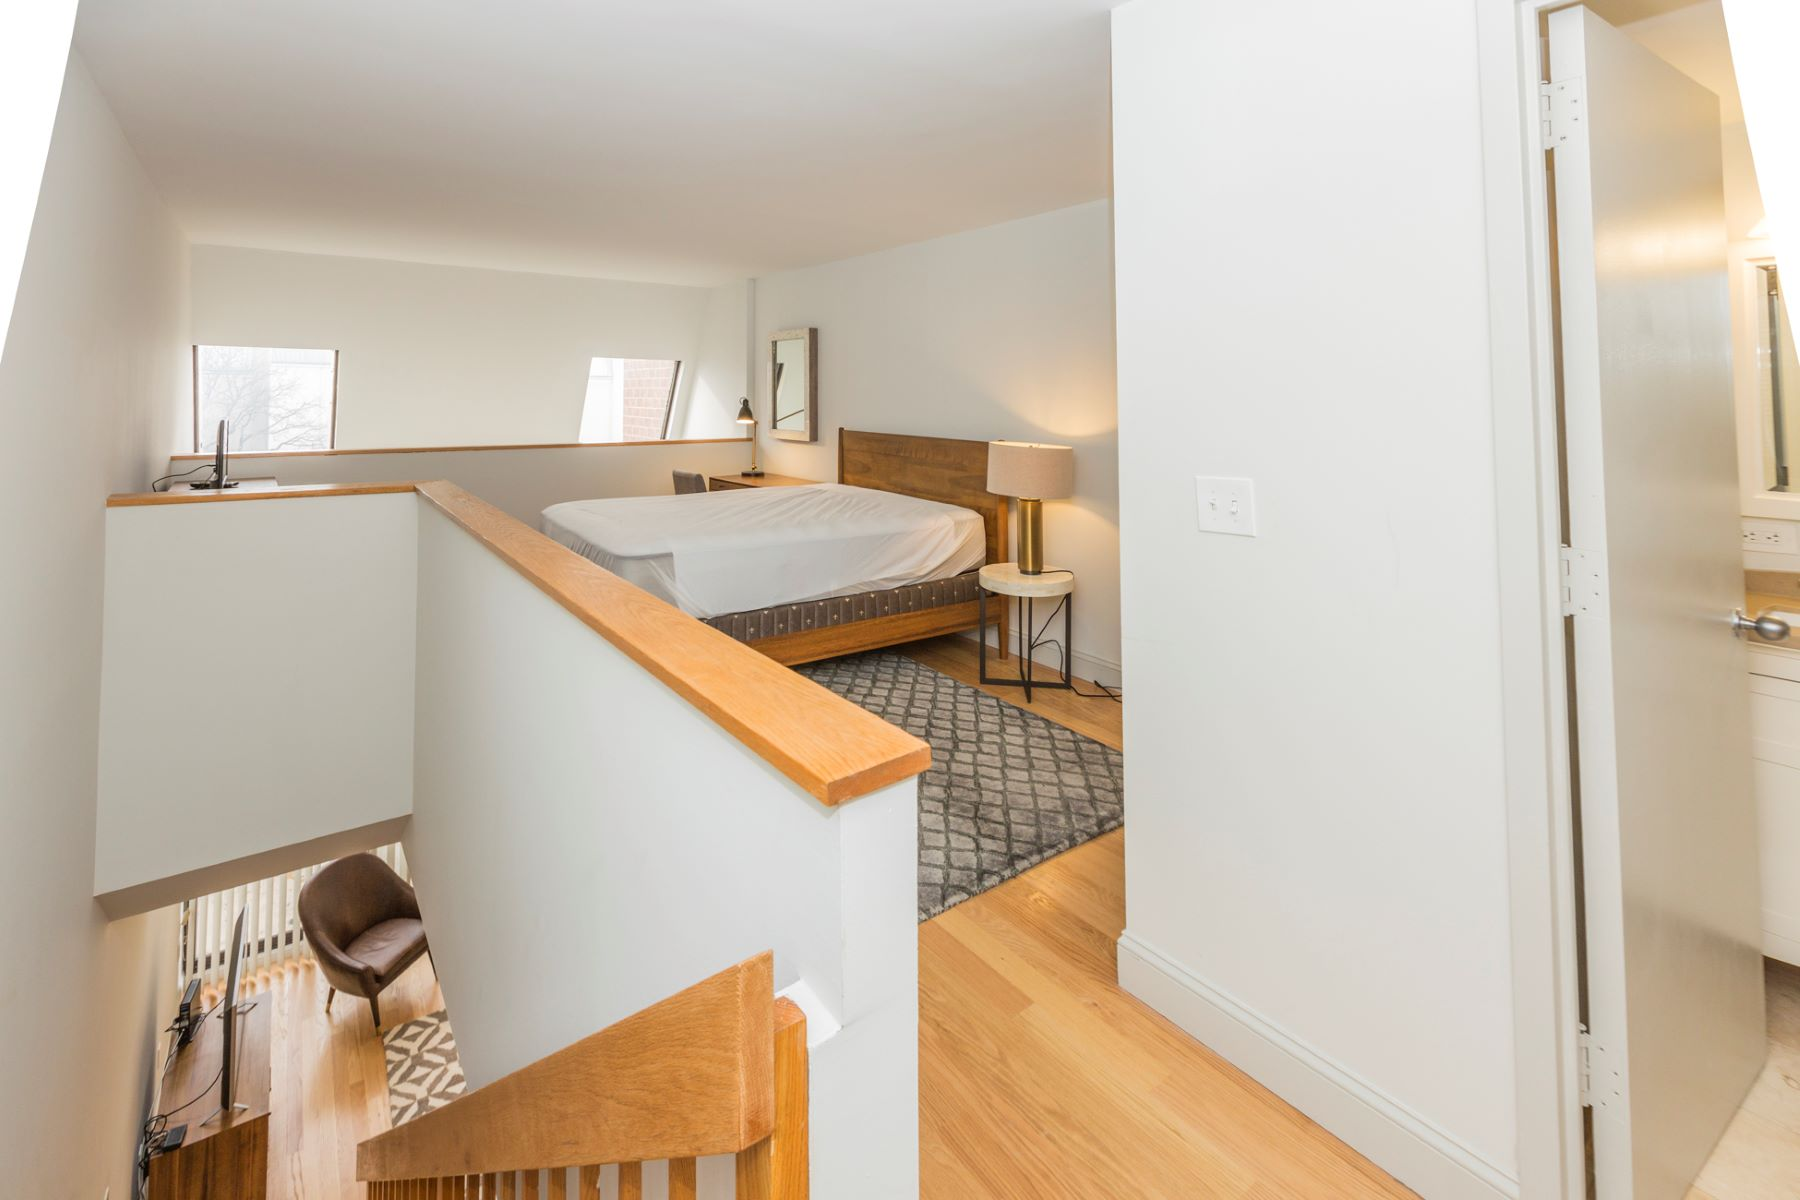 Additional photo for property listing at One Bedroom Condo Available for Rent - Heart of Princeton 33 Witherspoon Street, Unit 1, Princeton, New Jersey 08542 United States